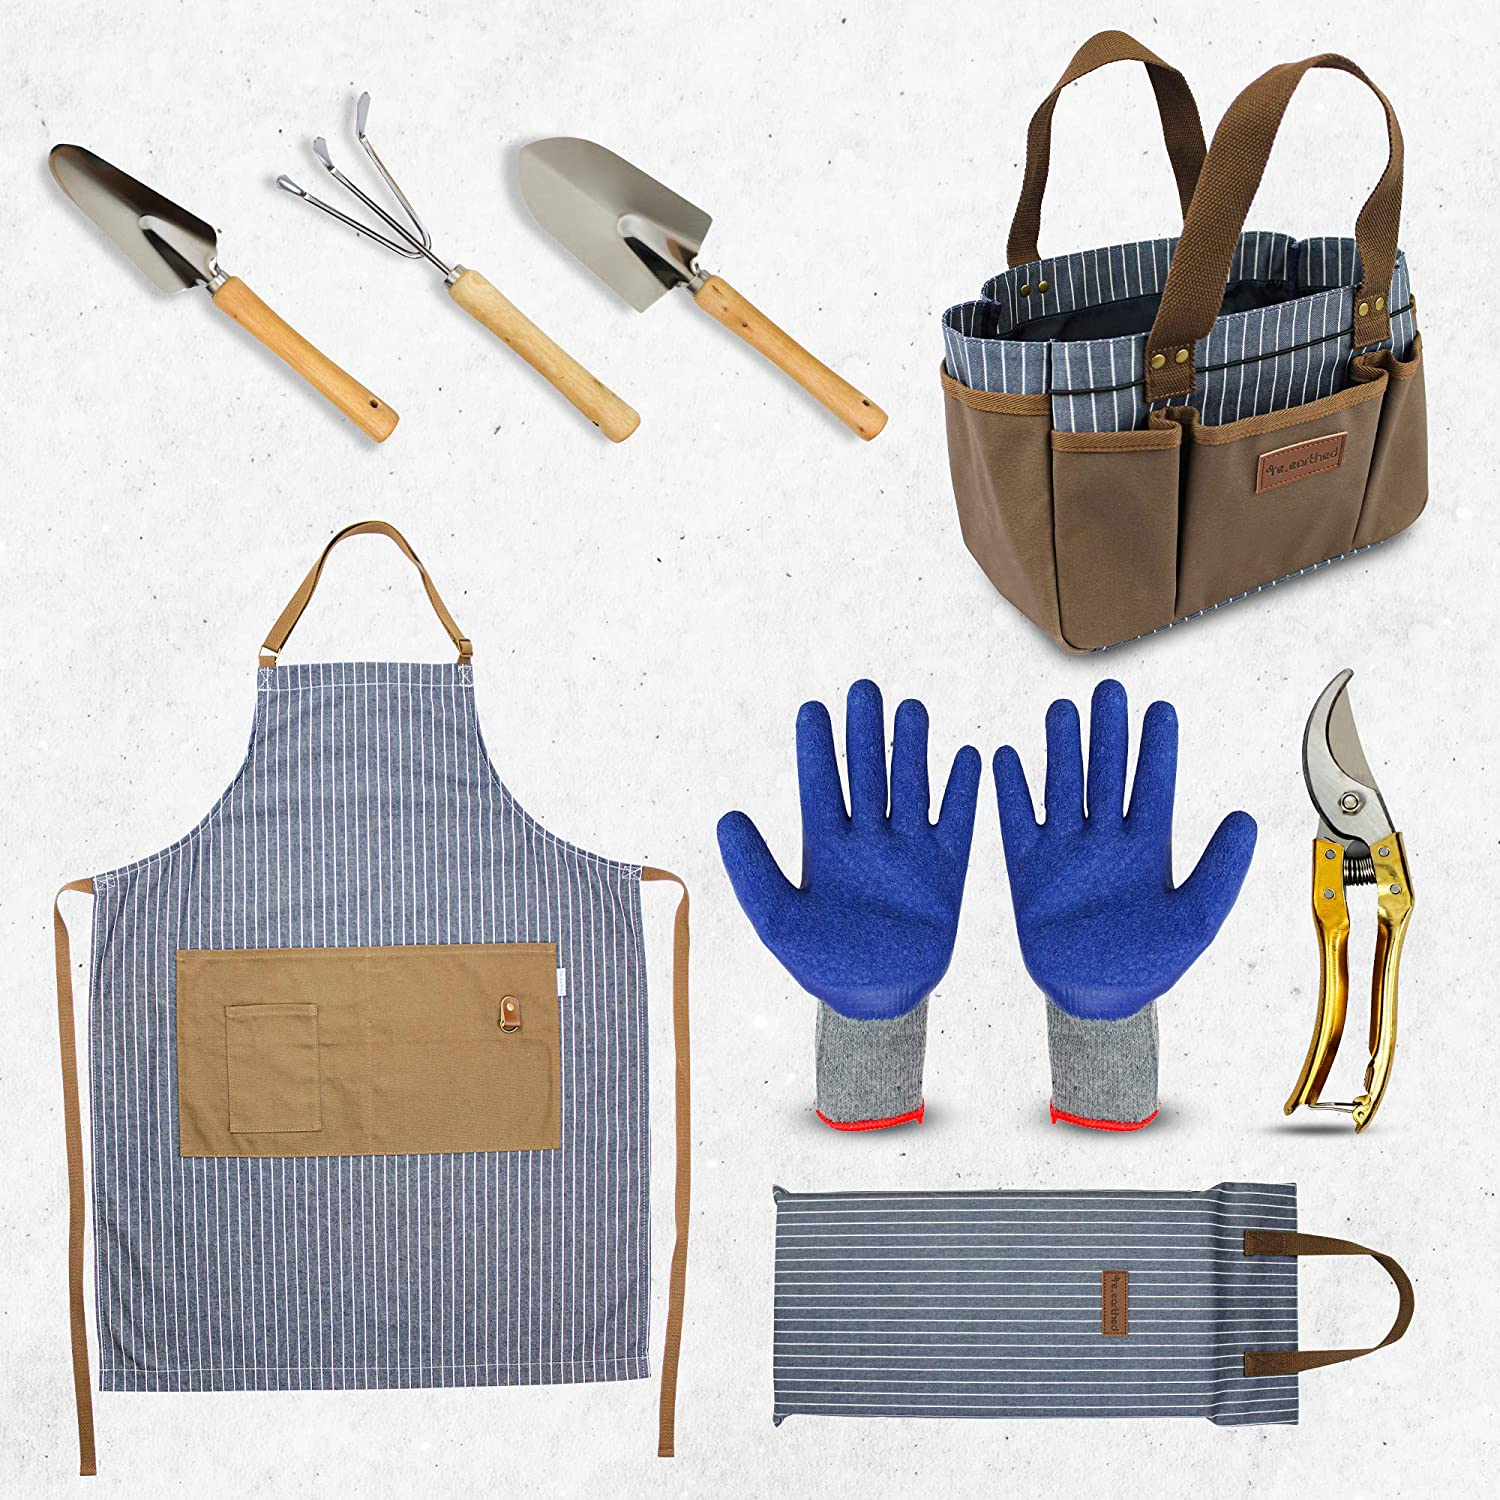 re.earthed Stylish, Modern 8 Piece Gardening Bag and Tool Set for Women and Men. Great as a Gift Set for Gardeners and Includes a Bag Tote, Apron, Kneeler, Stainless Steel Tools, Shears and Gloves